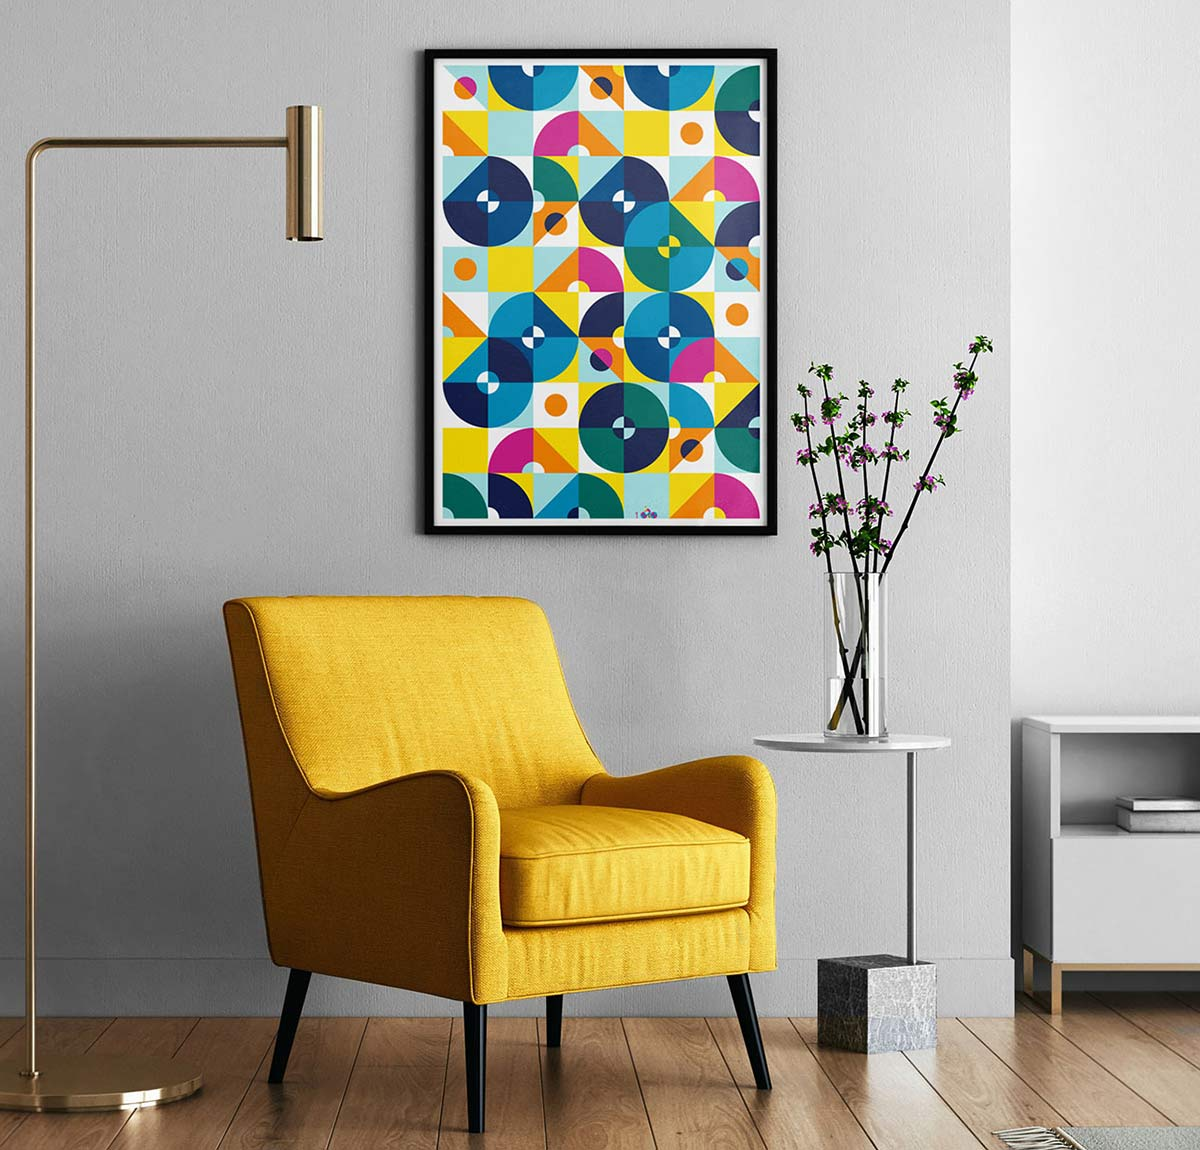 100copies #47, 8 Cyclists art print mounted